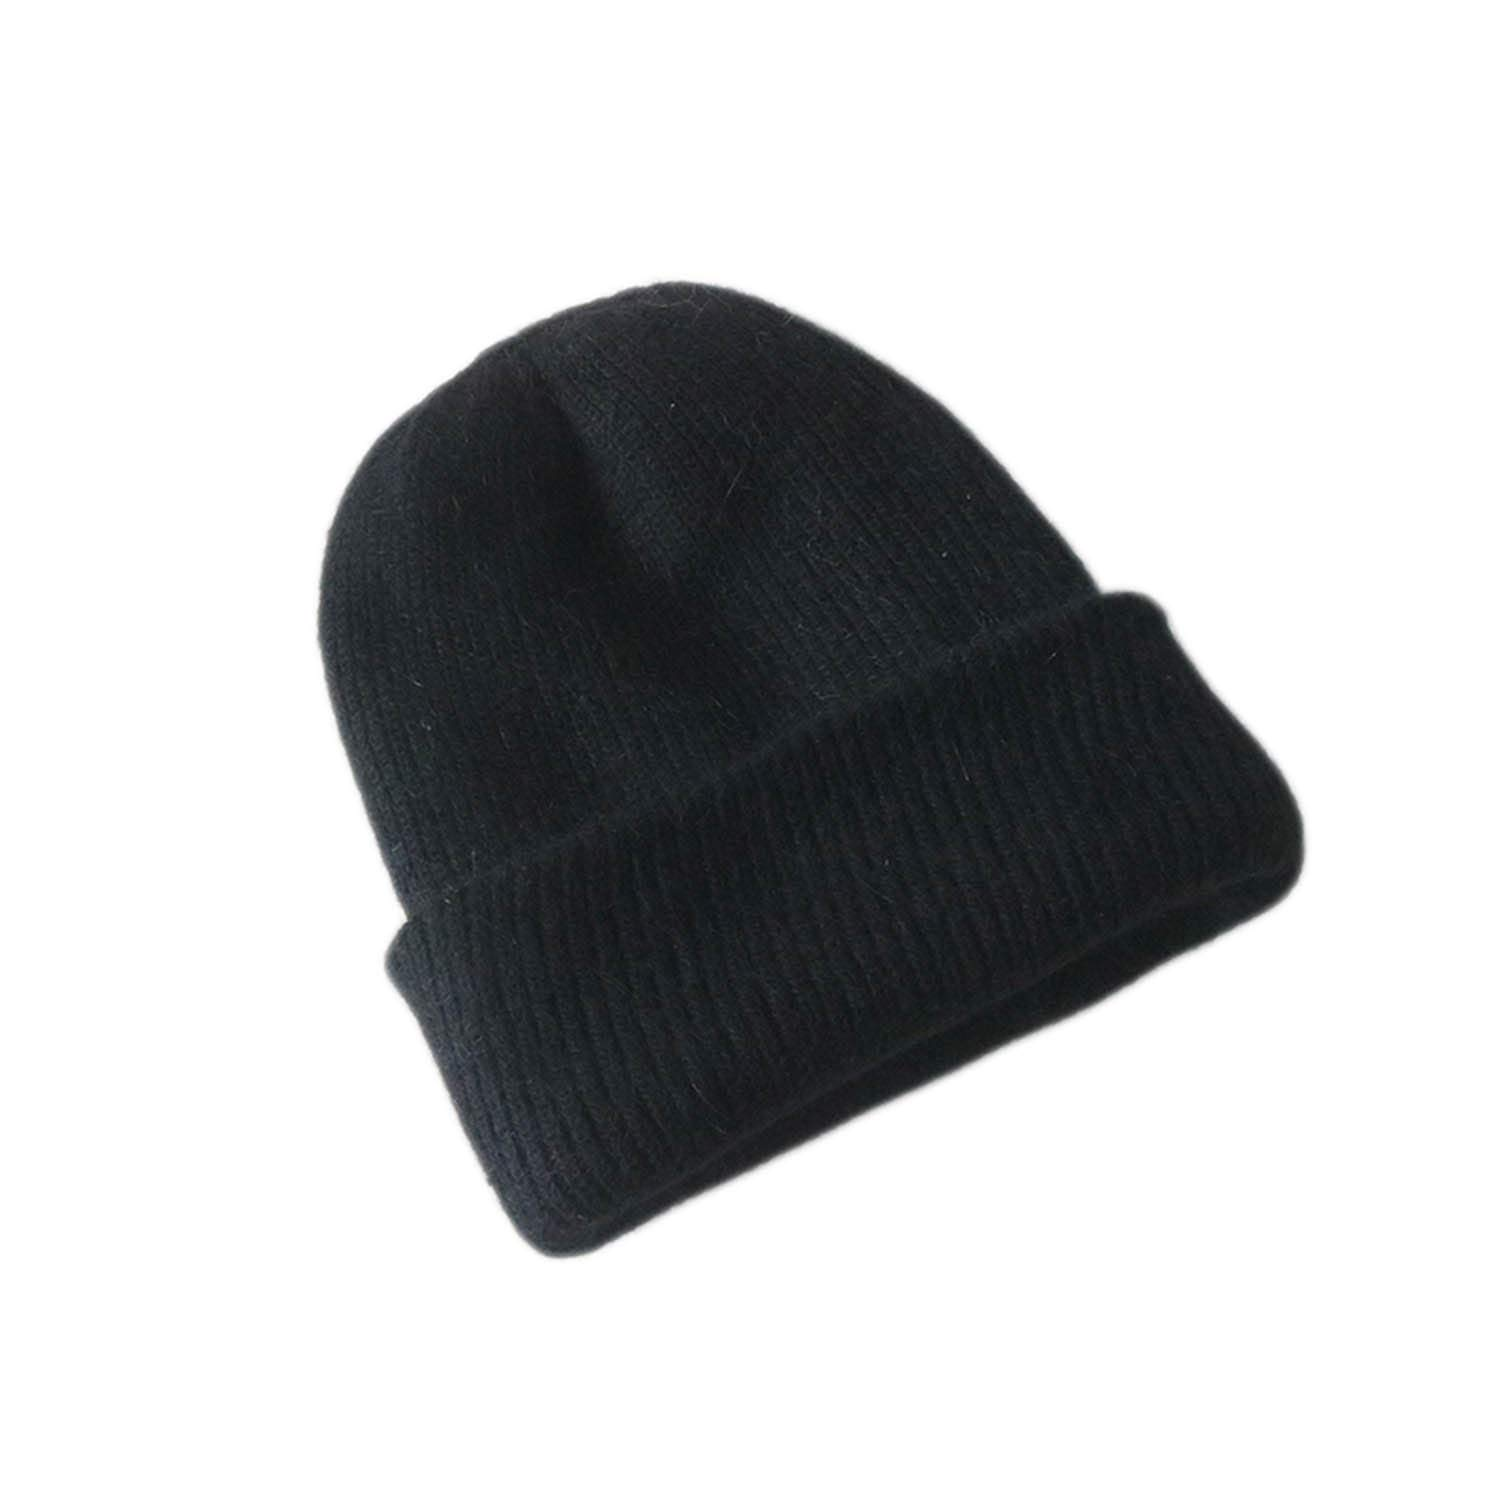 6f70f421b Simple Rabbit Fur Beanie Hat for Women Winter Skullies Warm Gravity ...